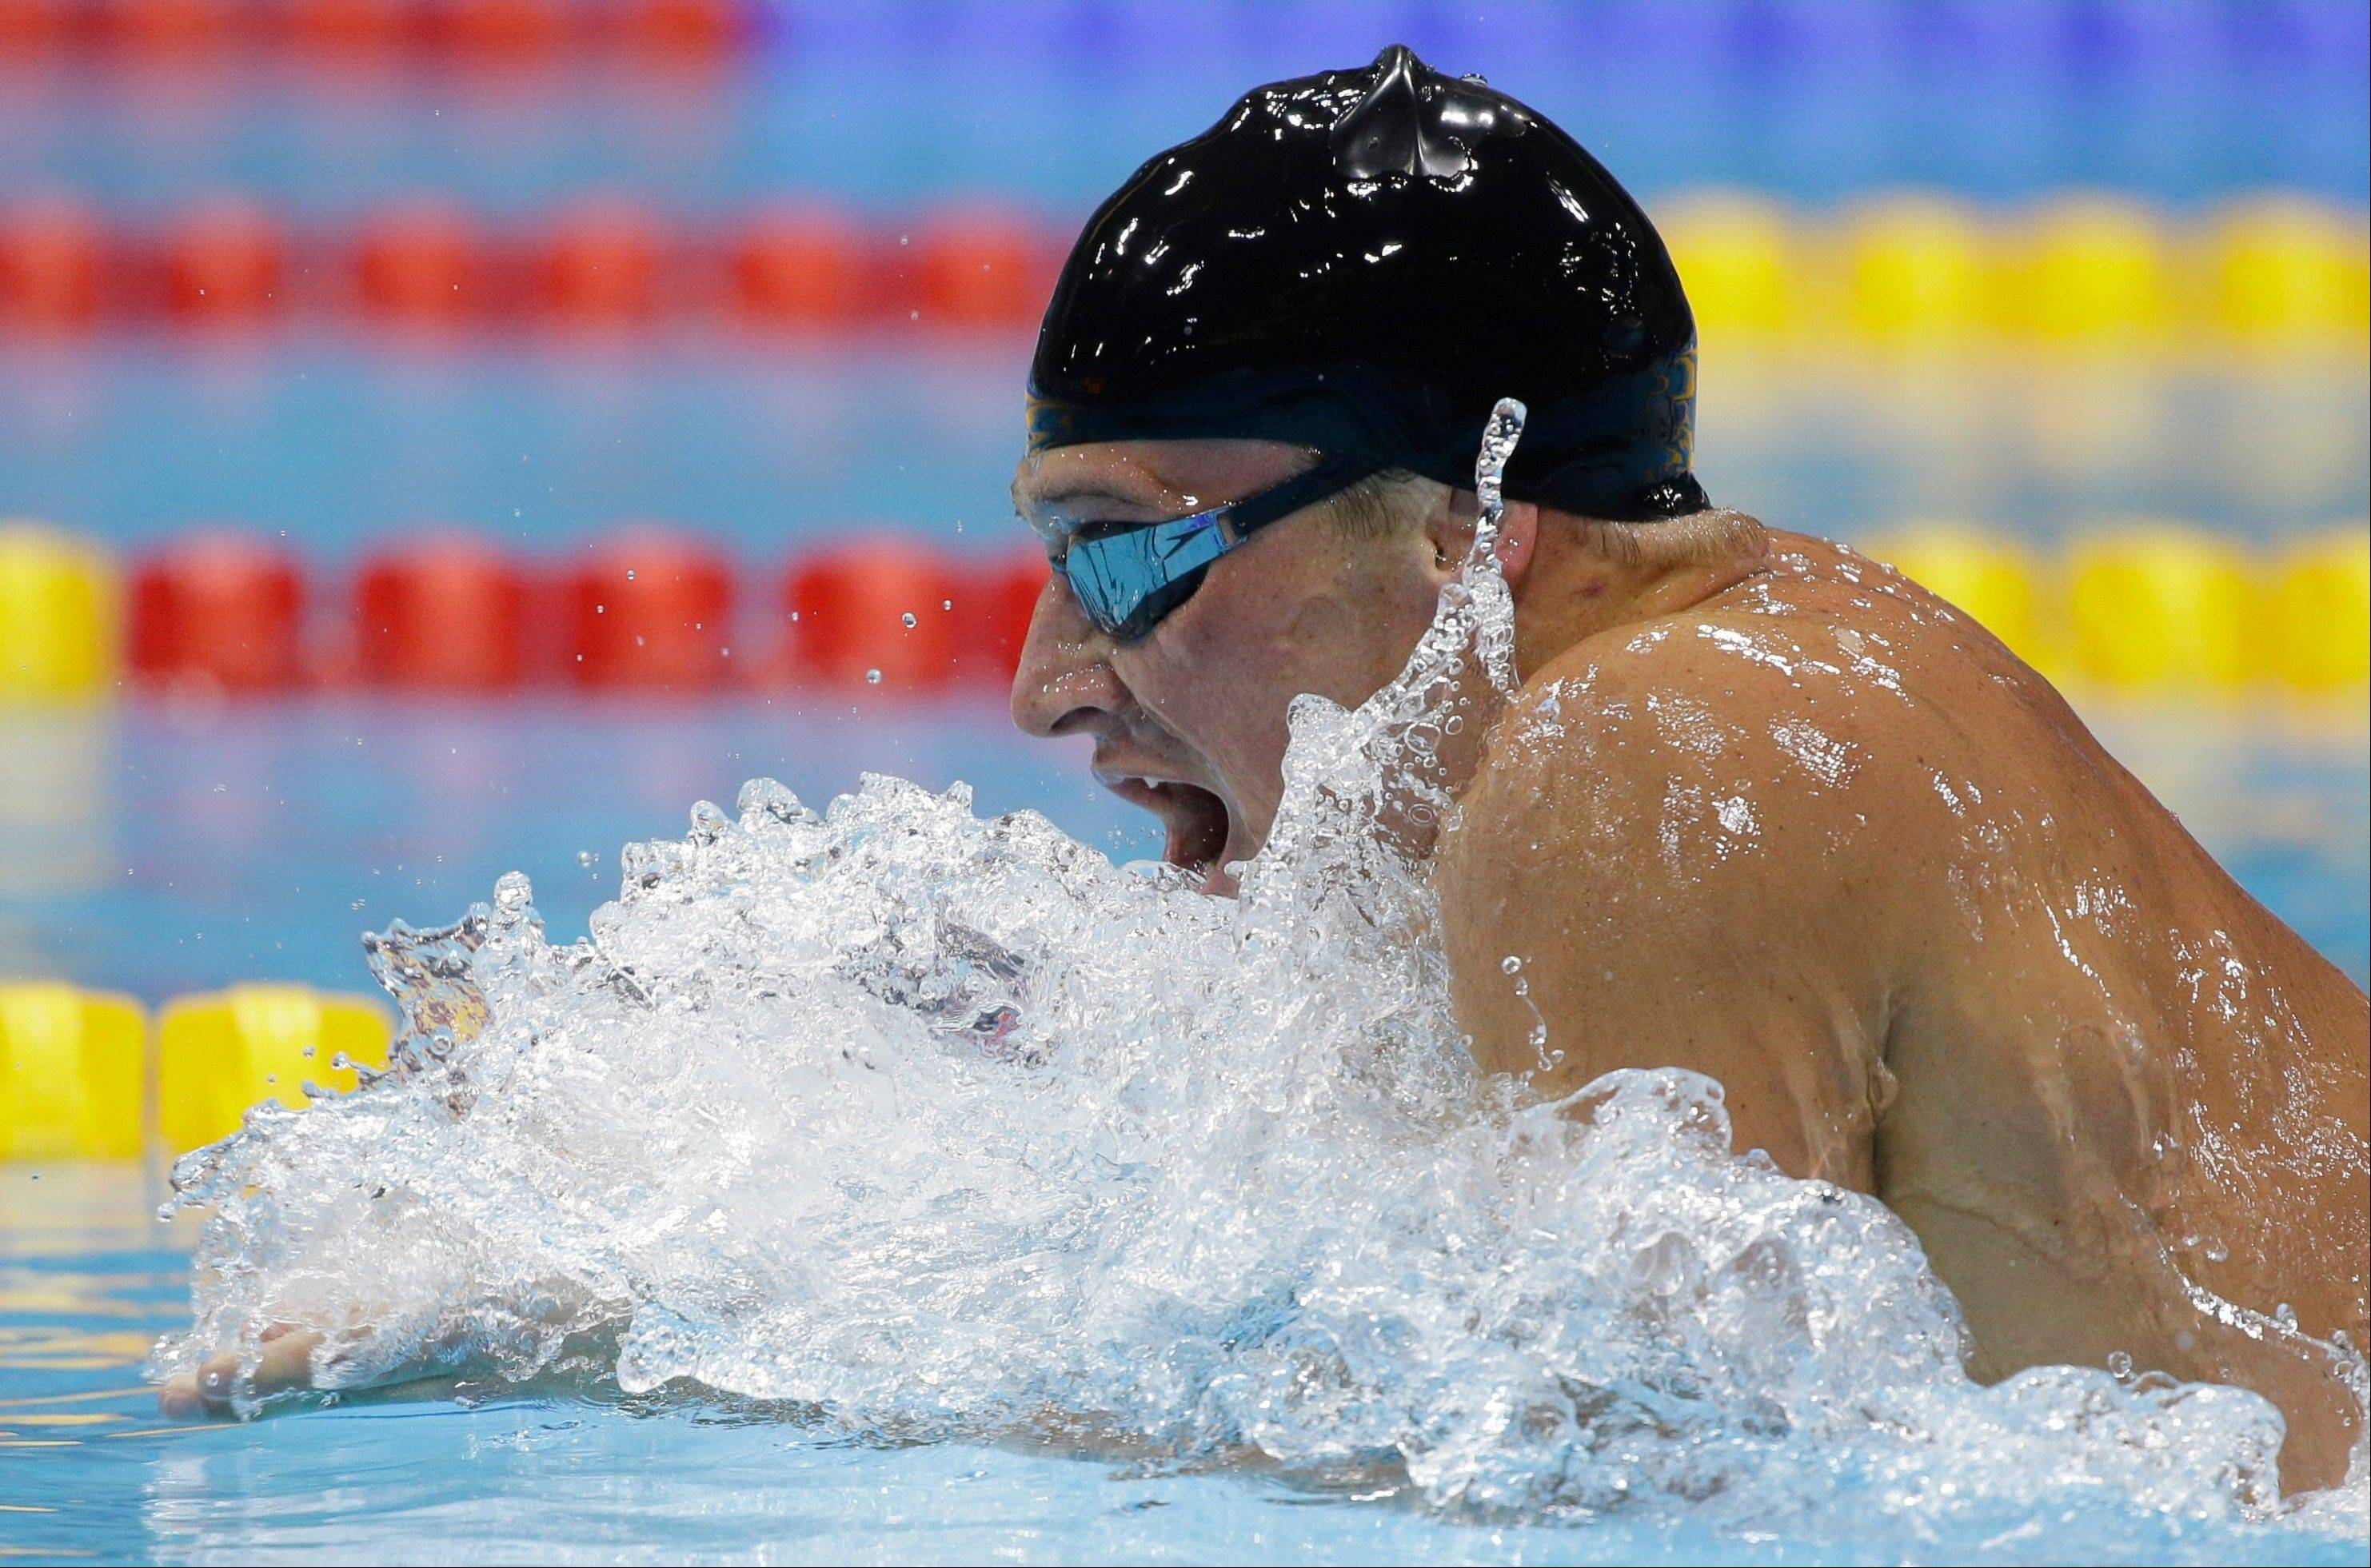 United States� Ryan Lochte competes in the men�s 400-meter individual medley swimming final at the Aquatics Centre in the Olympic Park during the 2012 Summer Olympics in London, Saturday, July 28, 2012.